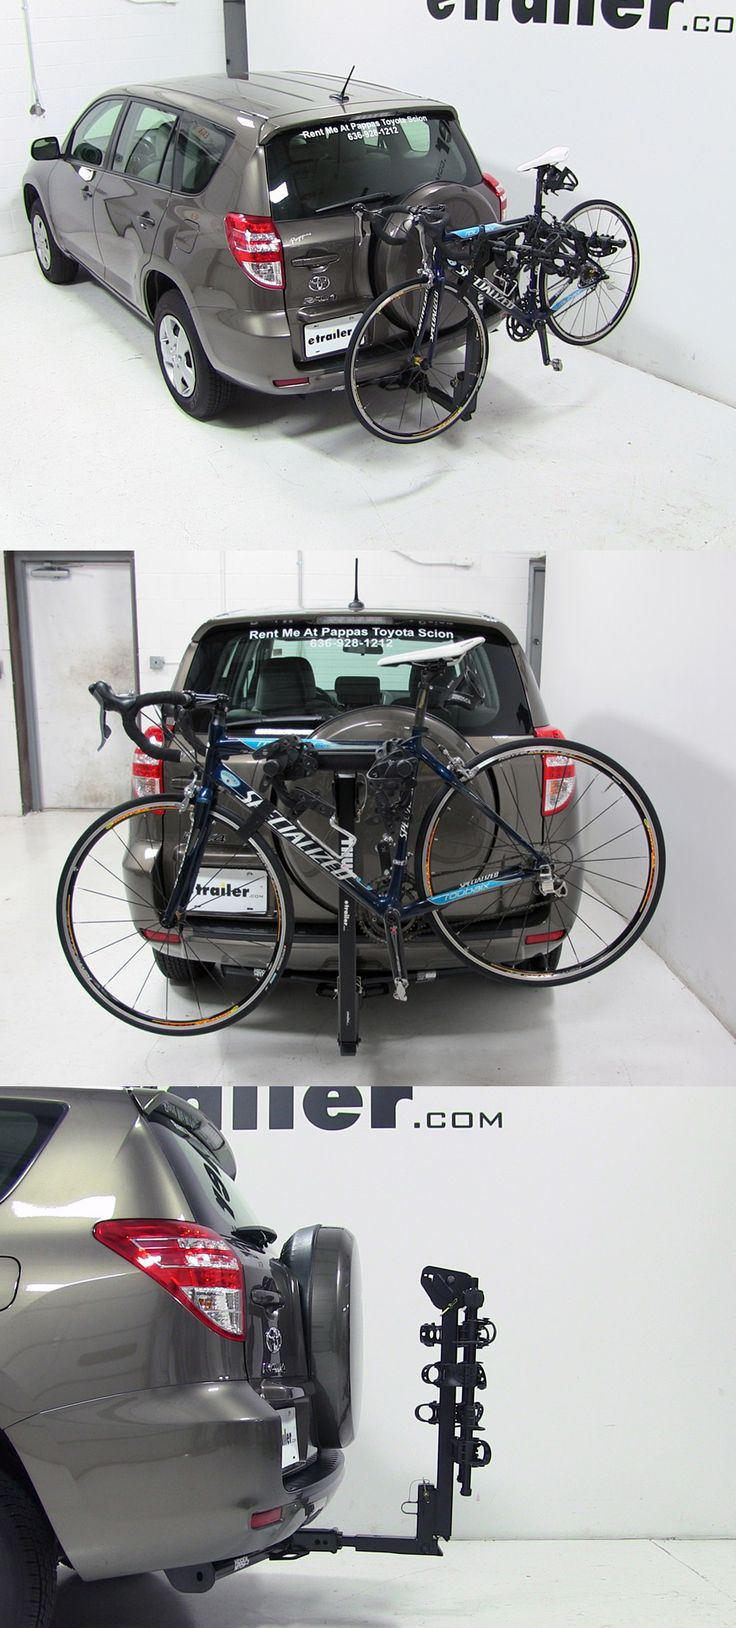 Need a trustworthy bike rack? The Thule Hitching Post Pro - Folding Tilting 4 Bike Rack is in the running when it comes to accessories. Read reviews, watch 'how to' installation videos and see which bike rack is best for your Toyota RAV4 and get biking!